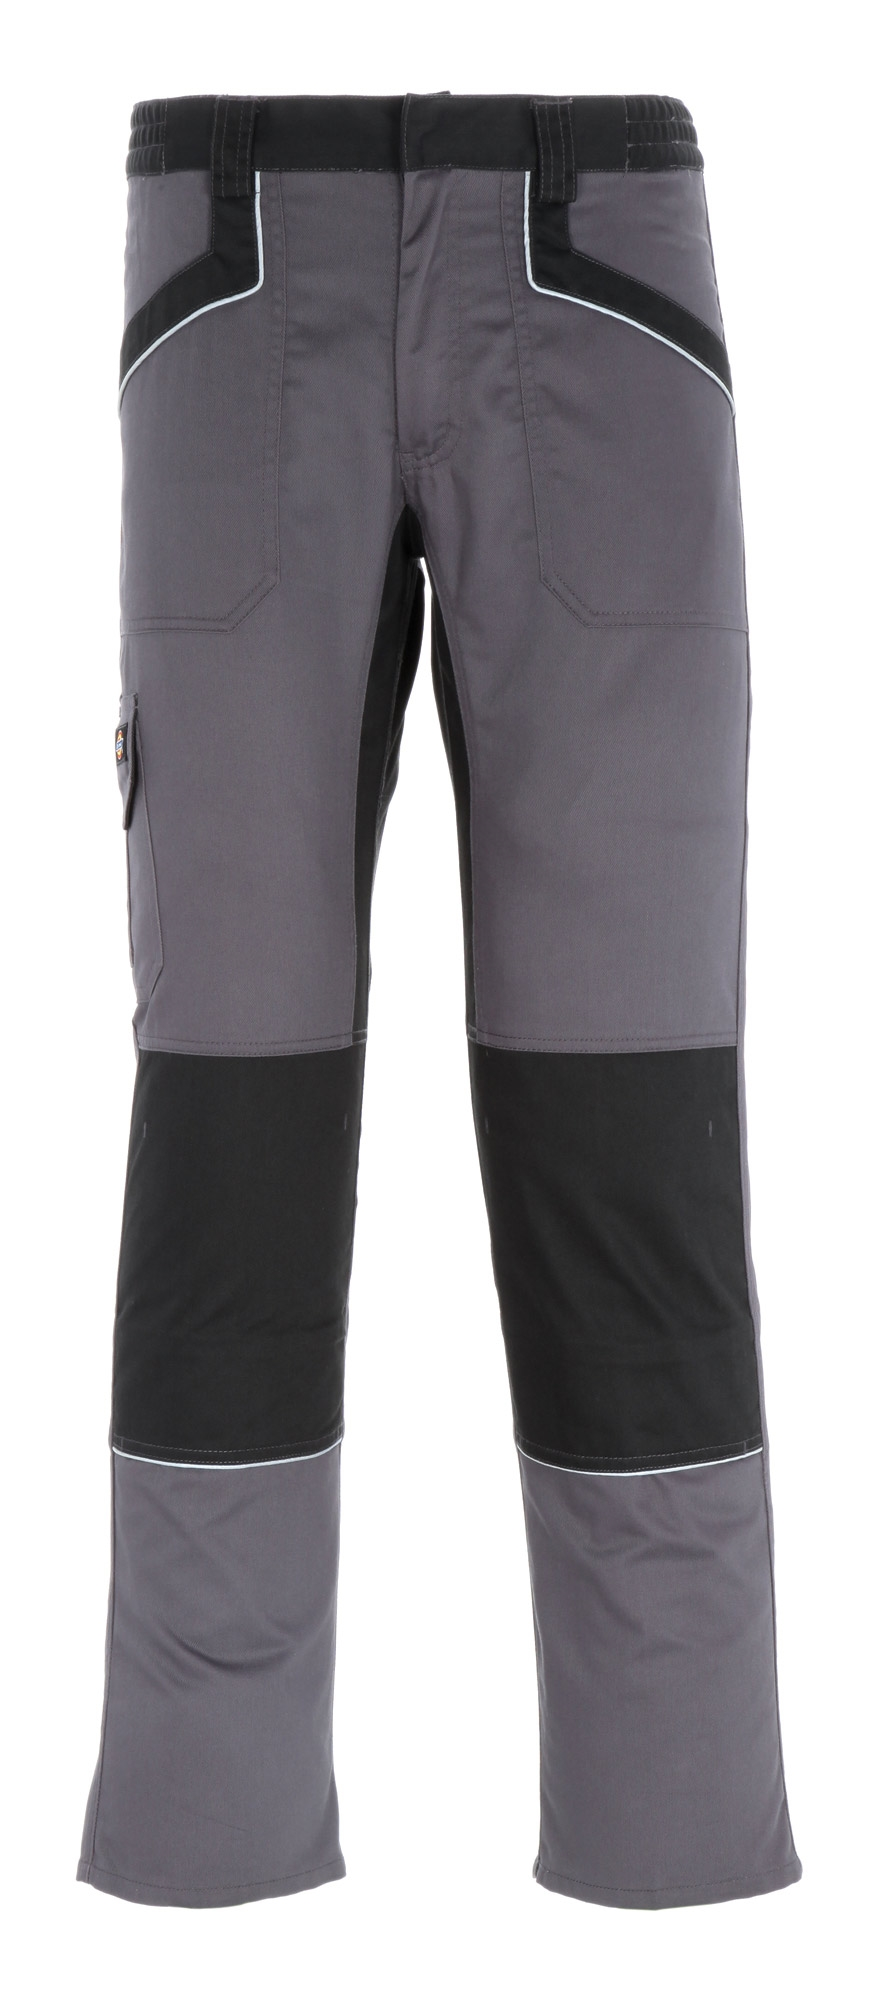 IND260 Trousers Grey/Black 52